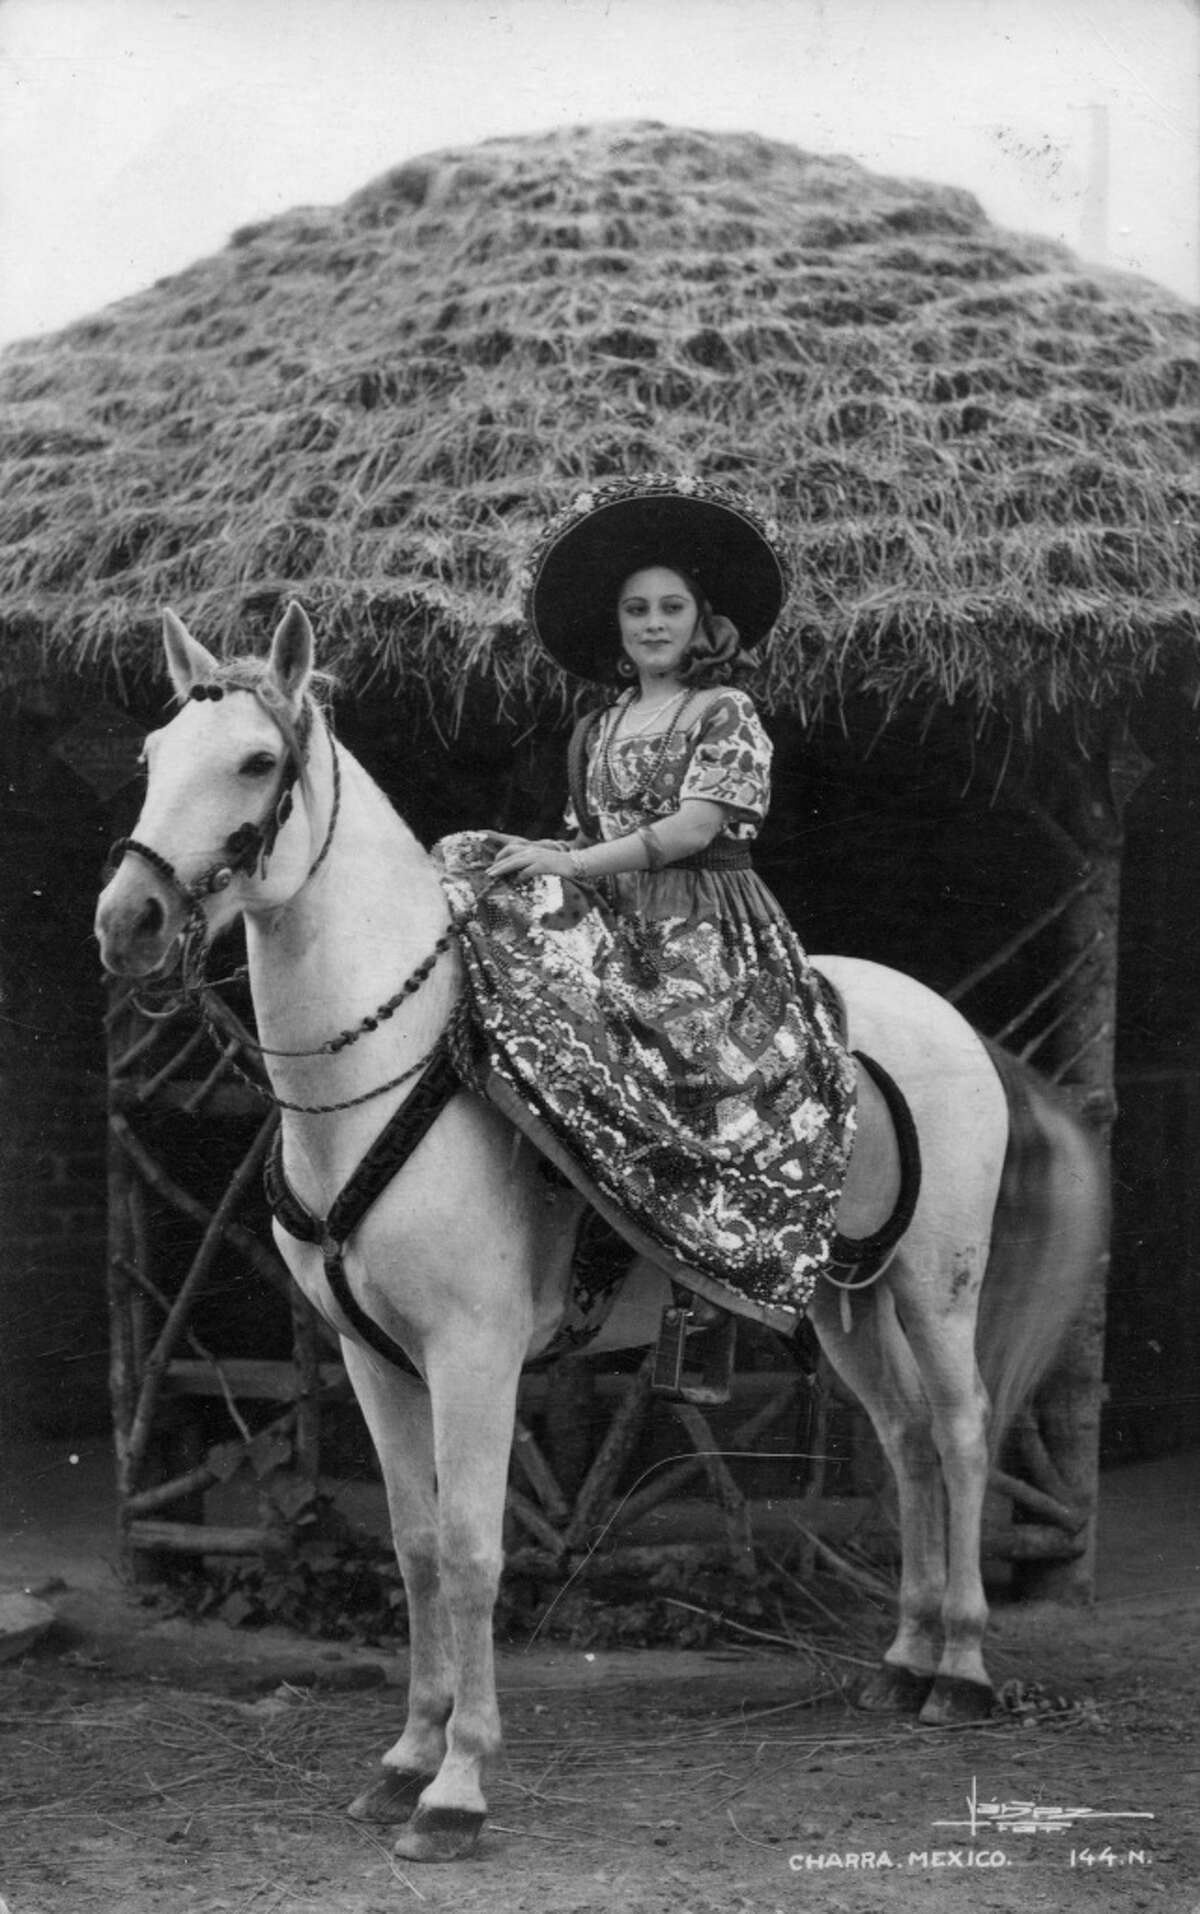 The charra style dates back to the 1800s. Here, a Mexican woman poses in costume and on horseback in the 1940s.